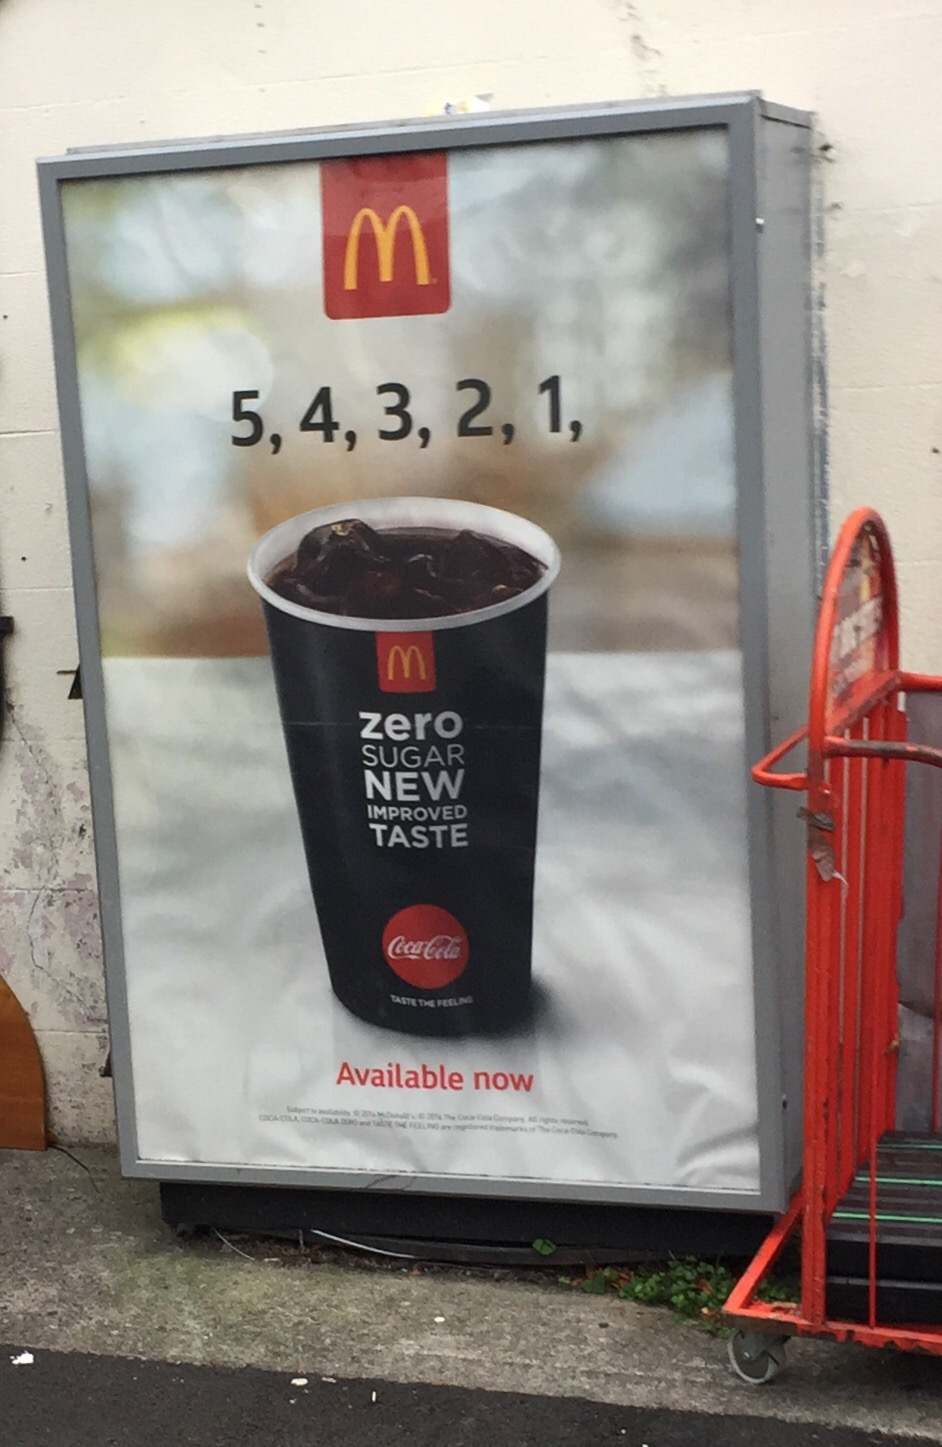 McDonalds – 5,4,3,2,1 zero sugar new improve taste Coca Cola available now